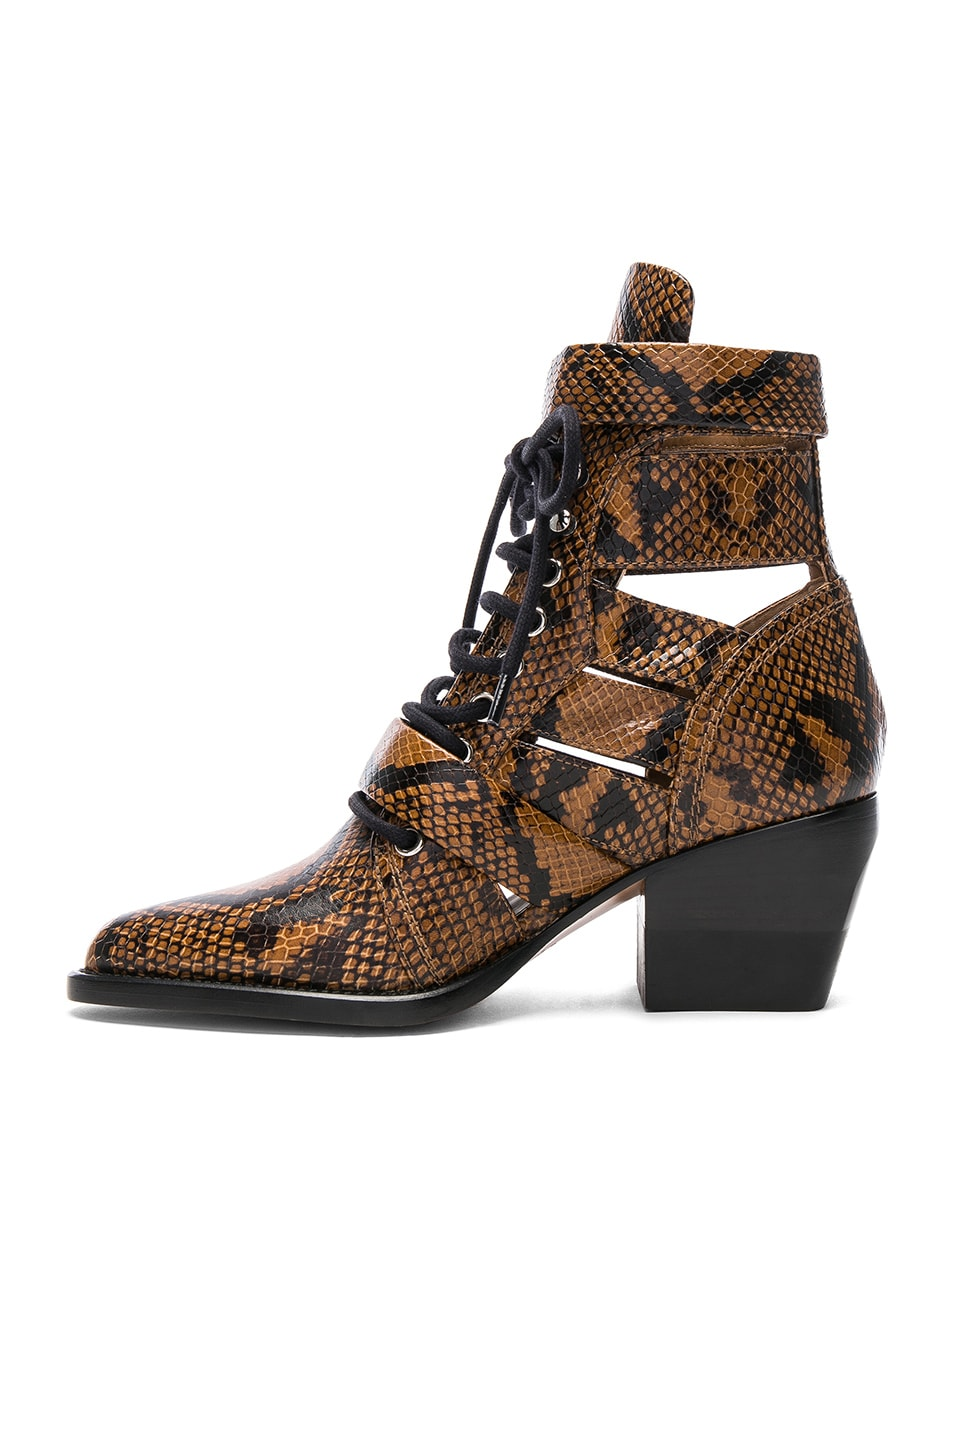 Image 5 of Chloe Rylee Python Print Leather Lace Up Buckle Boots in Light Tan